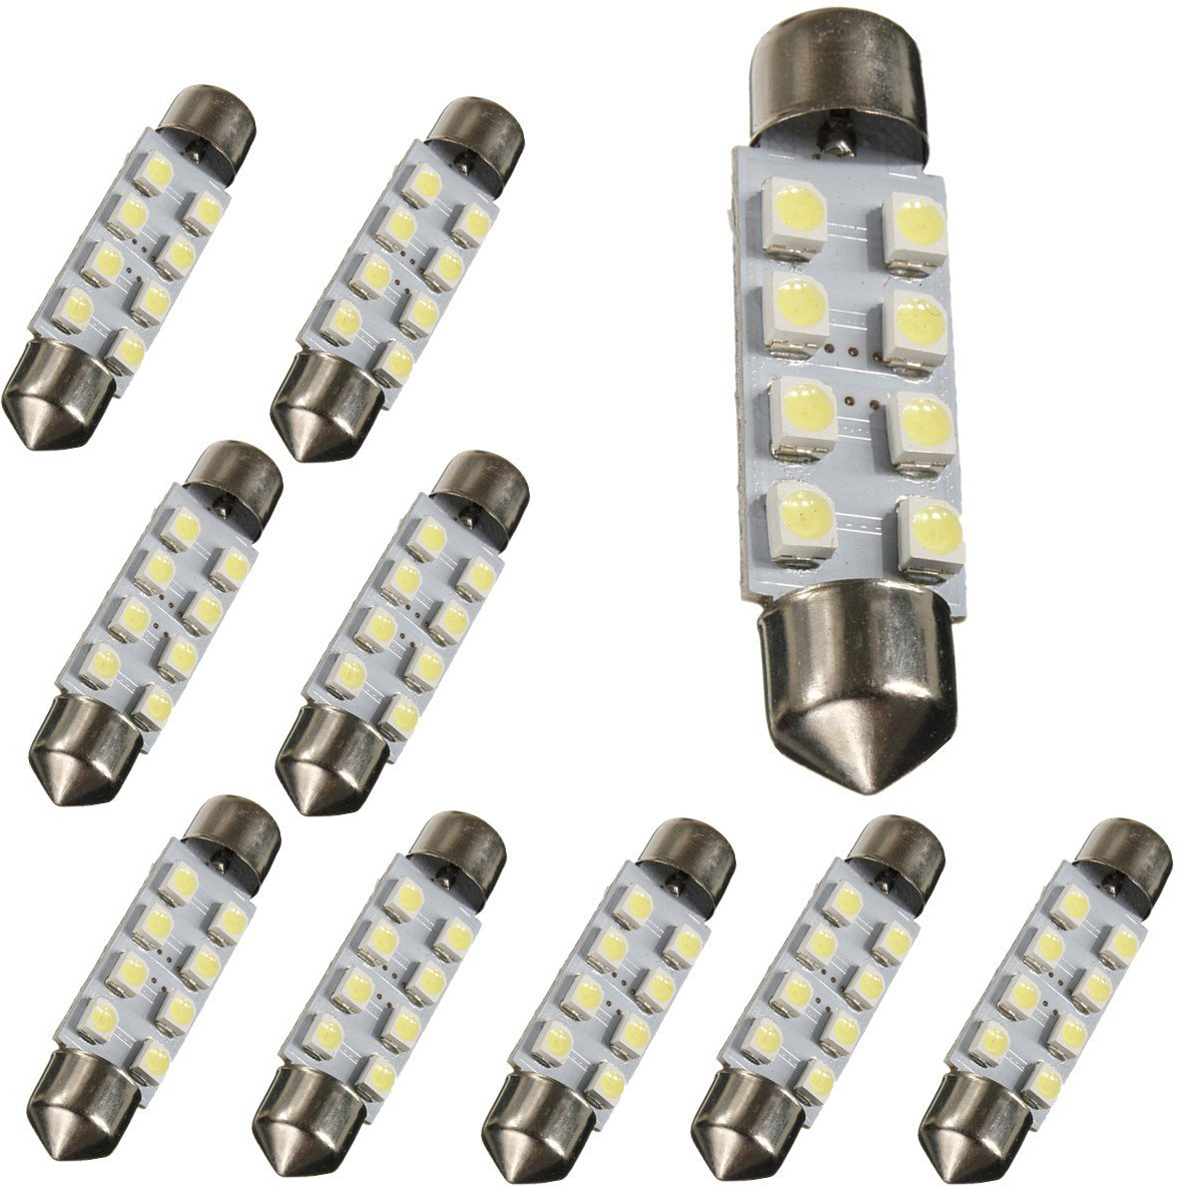 10 x White 42 mm 1210 SMD 8 <font><b>LED</b></font> DC <font><b>12</b></font> <font><b>V</b></font> Number plate light image